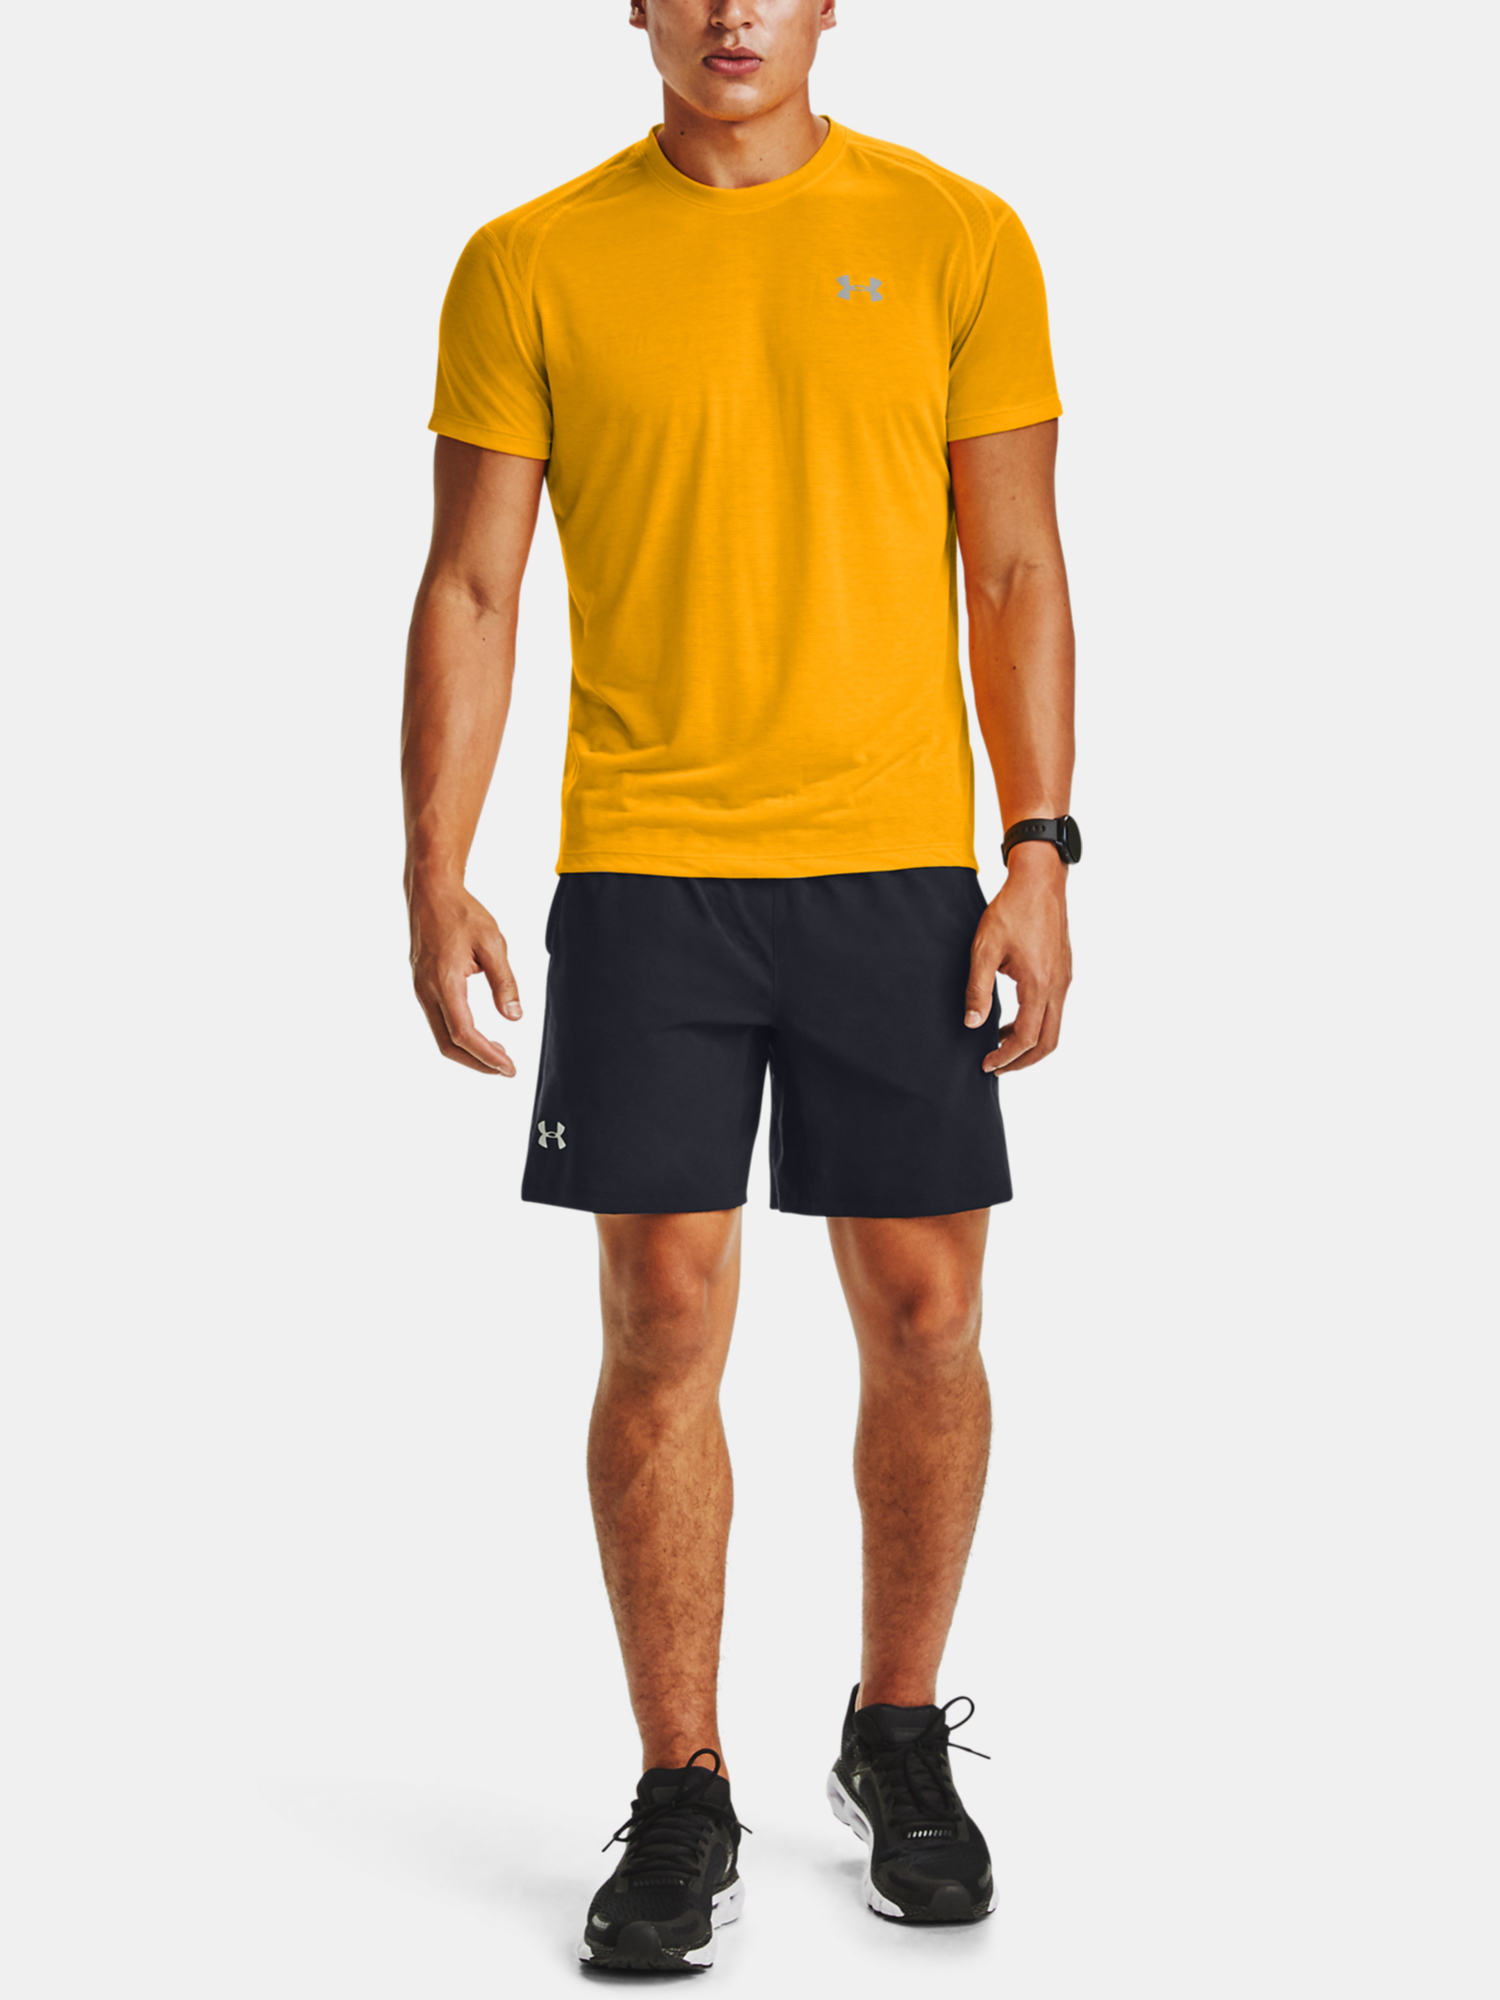 Tričko Under Armour STREAKER 2.0 SHORTSLEEVE-ORG (6)